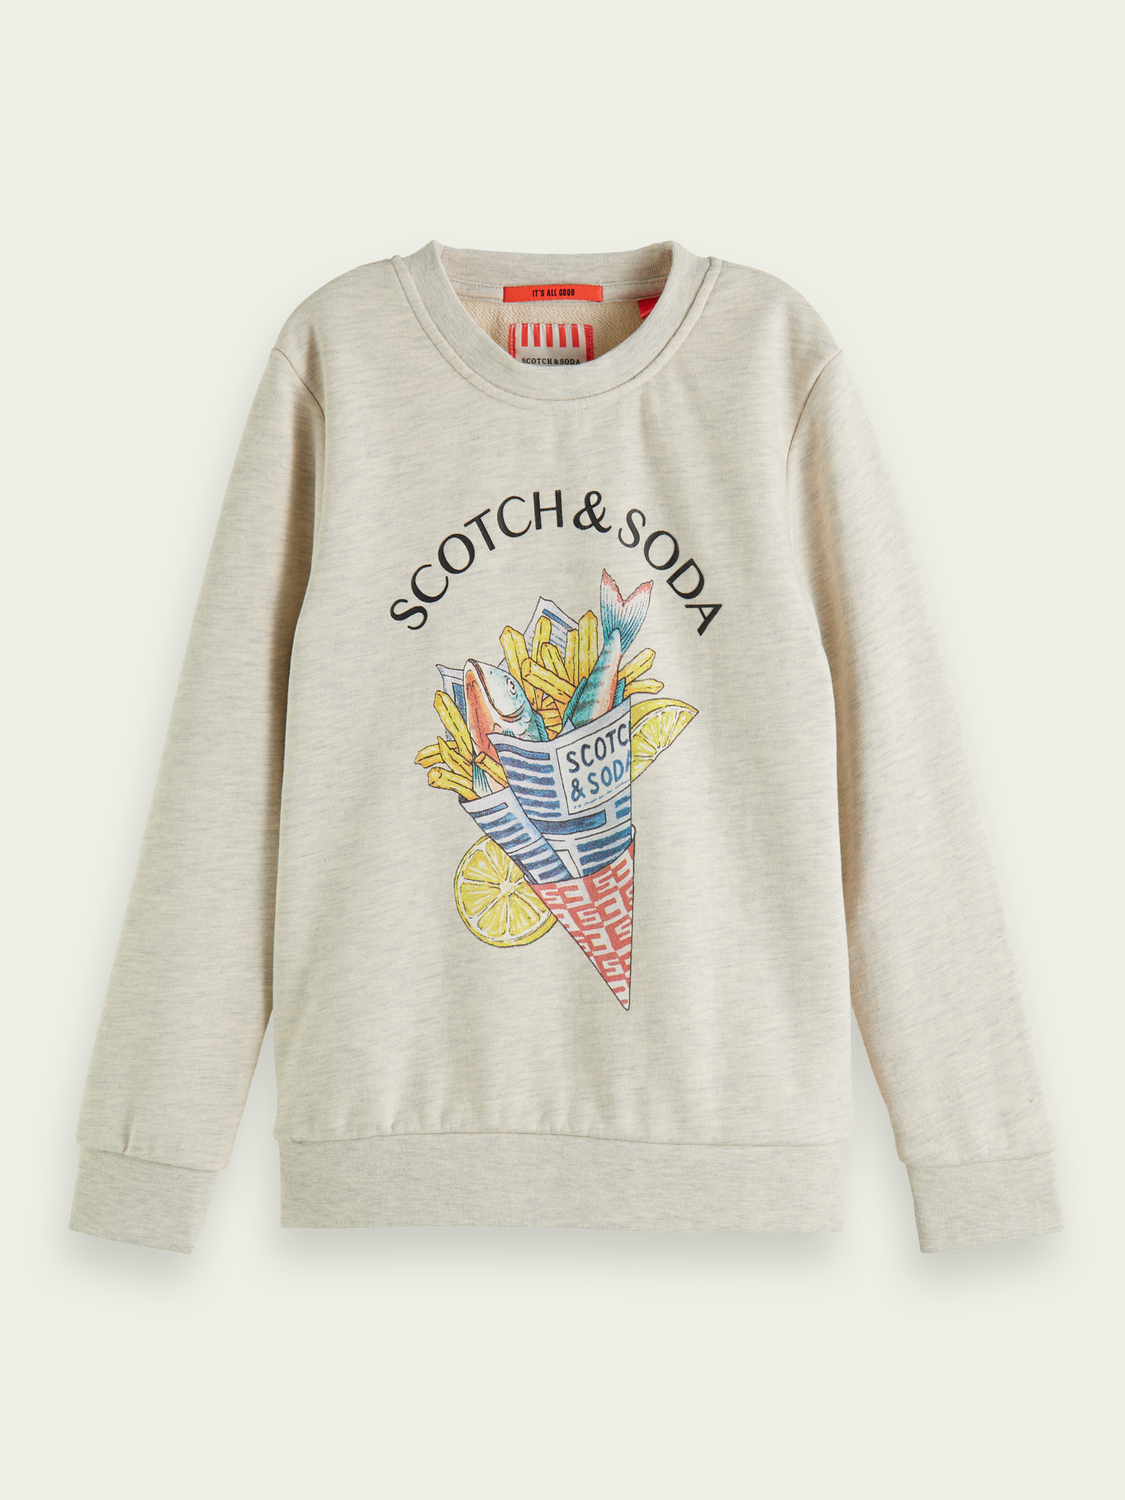 Kids Cotton sweater with fish and chips artwork